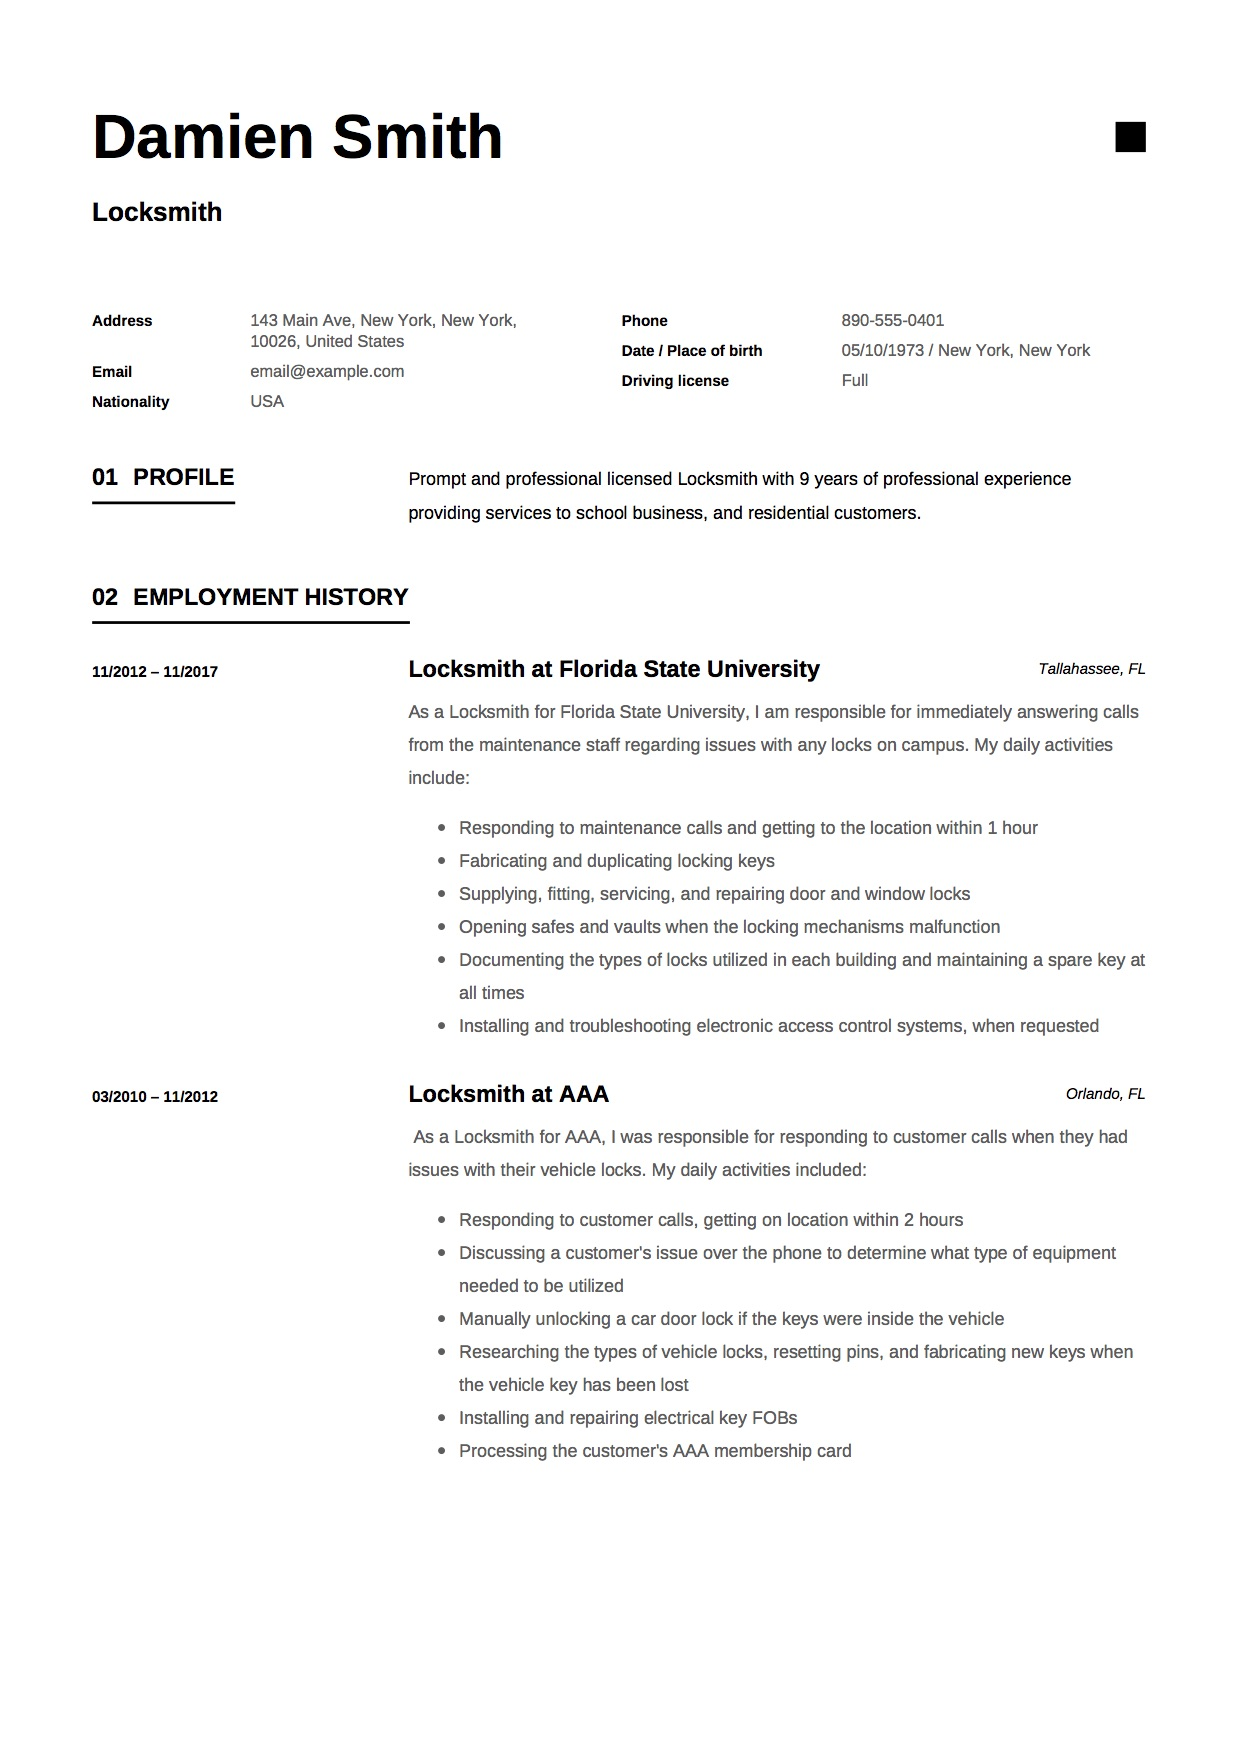 Locksmith Resume Amp Writing Guide 12 Samples Word